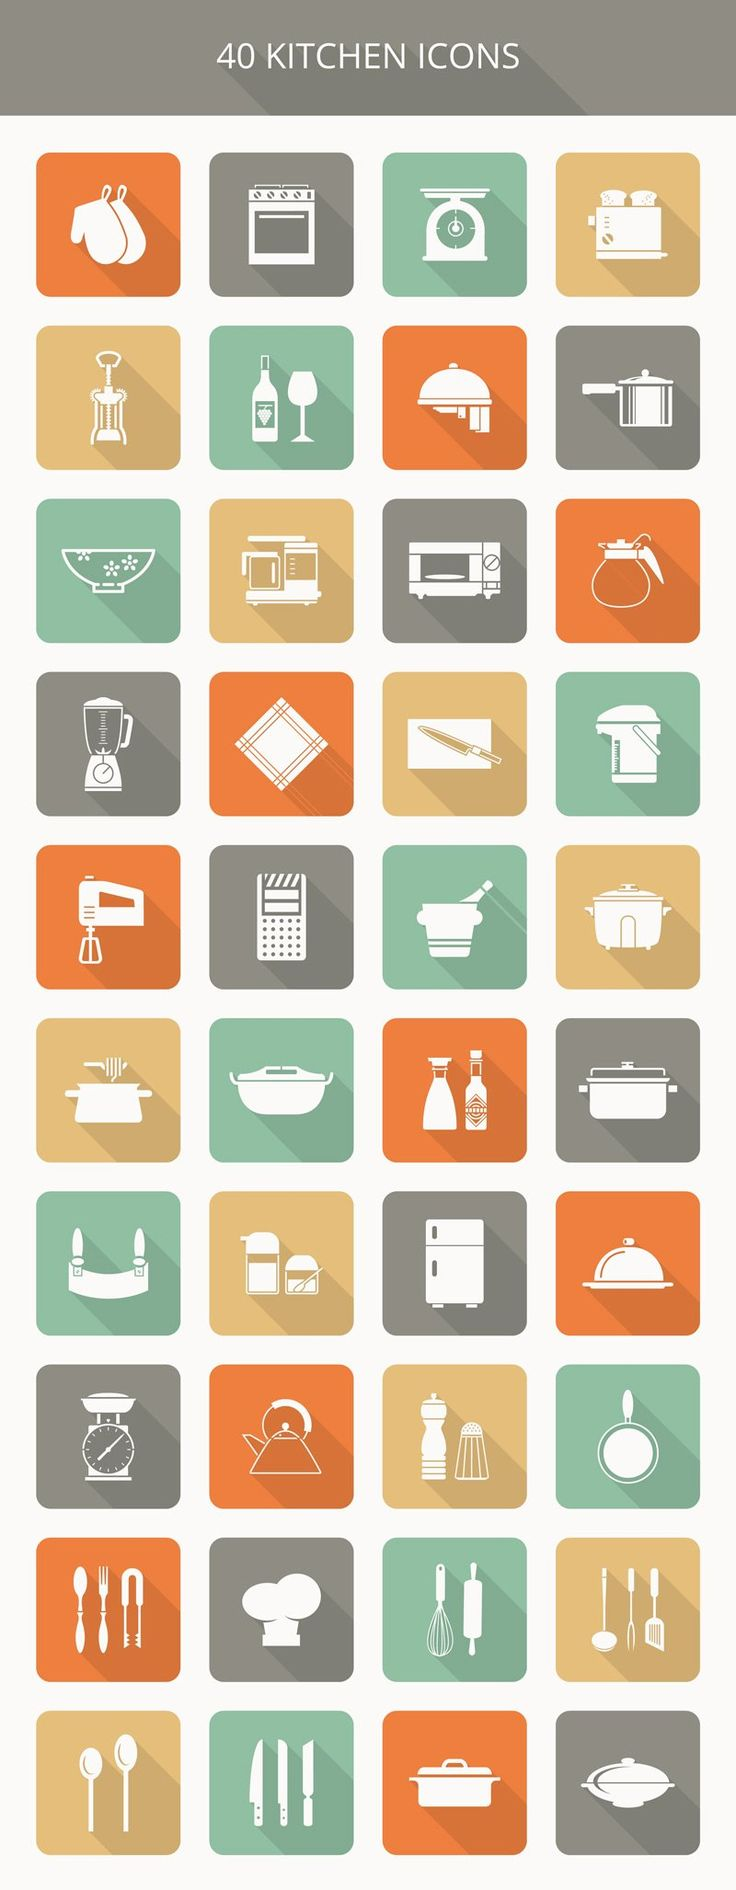 Awesome Whether You Are Designing For A New Restaurant, Or Adding Some Spice To An  Outdated Design, This Flat Kitchen Icon Set Will Make Your Project To Shine. Part 21